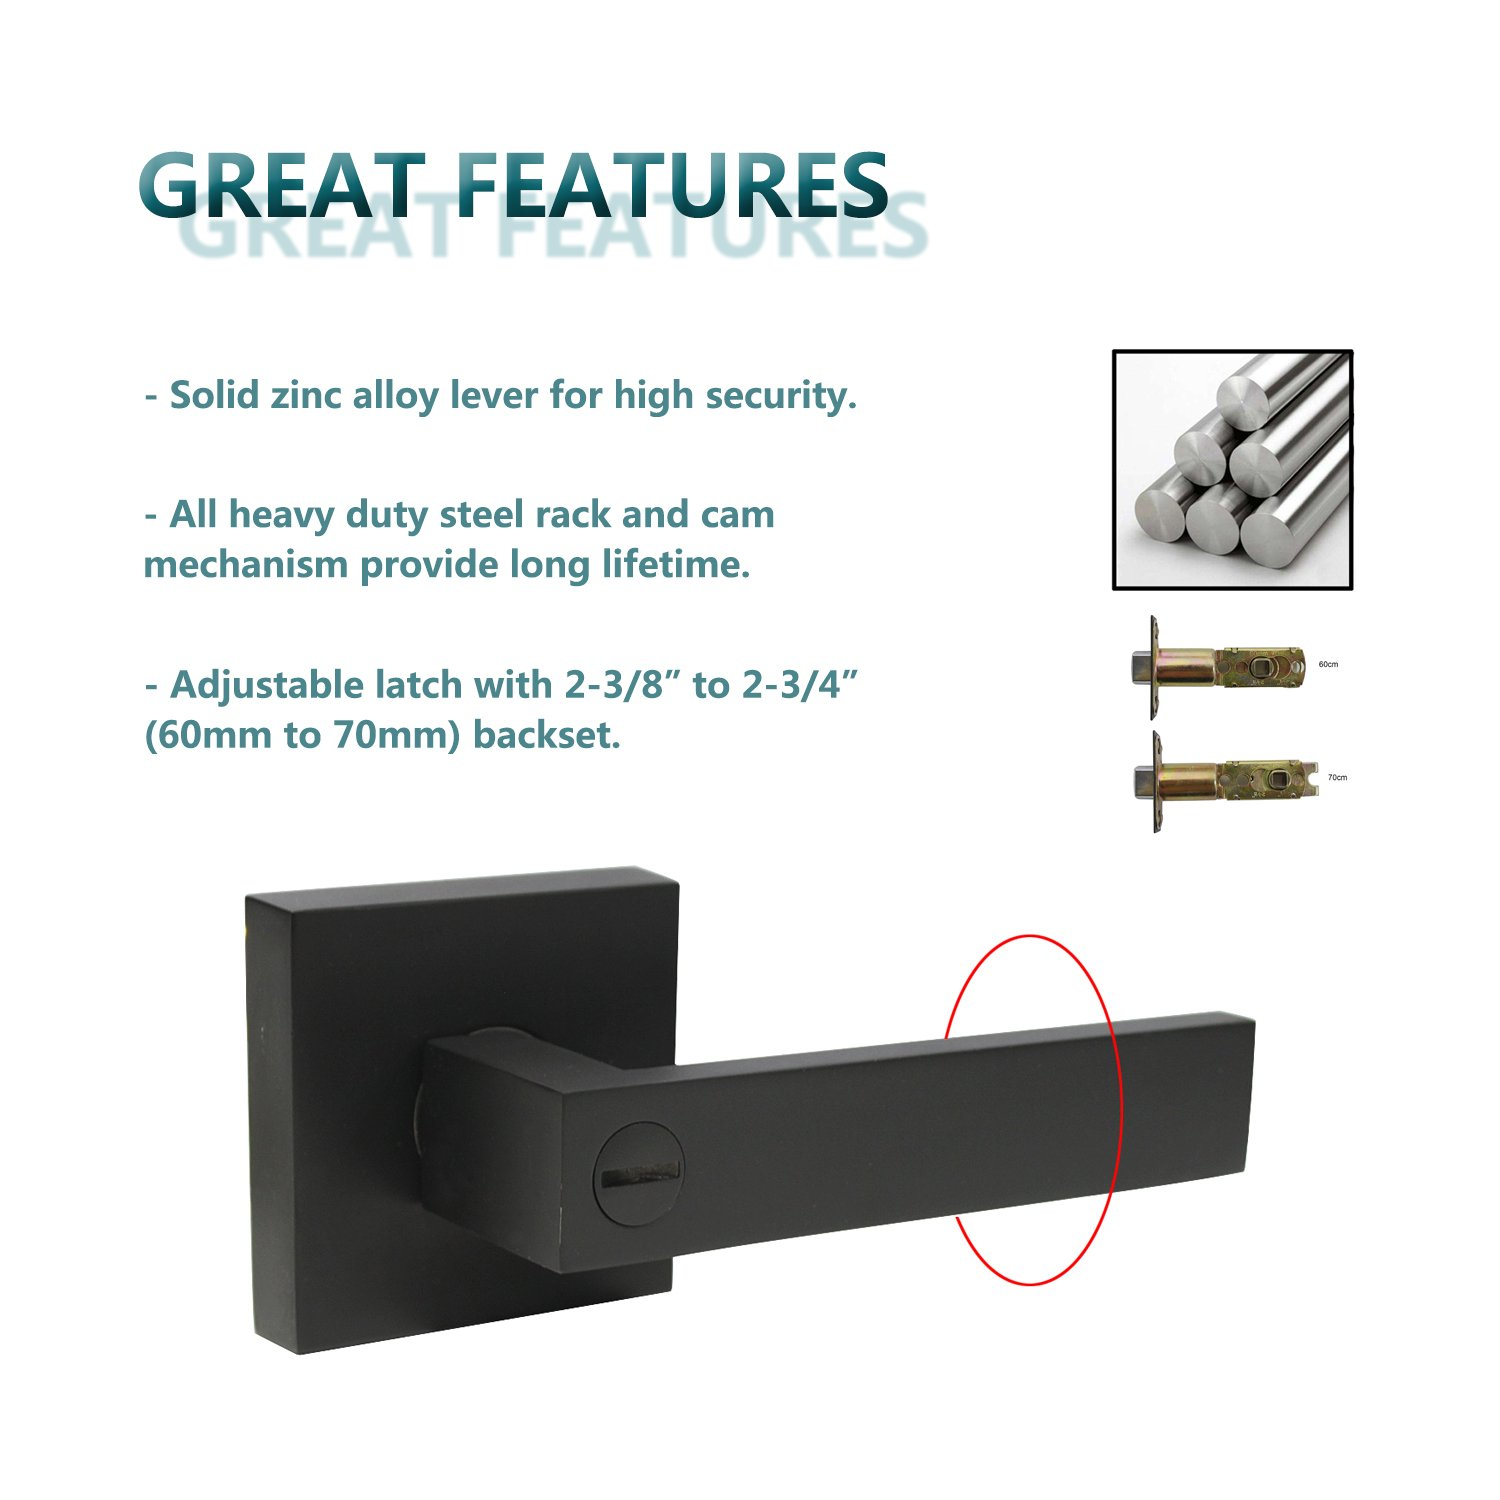 6 Pack Stainless Steel Commercial Heavy Duty Door Leversets Flat Style, Privacy Bed and Bath Leverset Lockset, Left or Right Handing, Matte Black Finish 2.07 lb One Lever by KNOBWELL (Image #4)